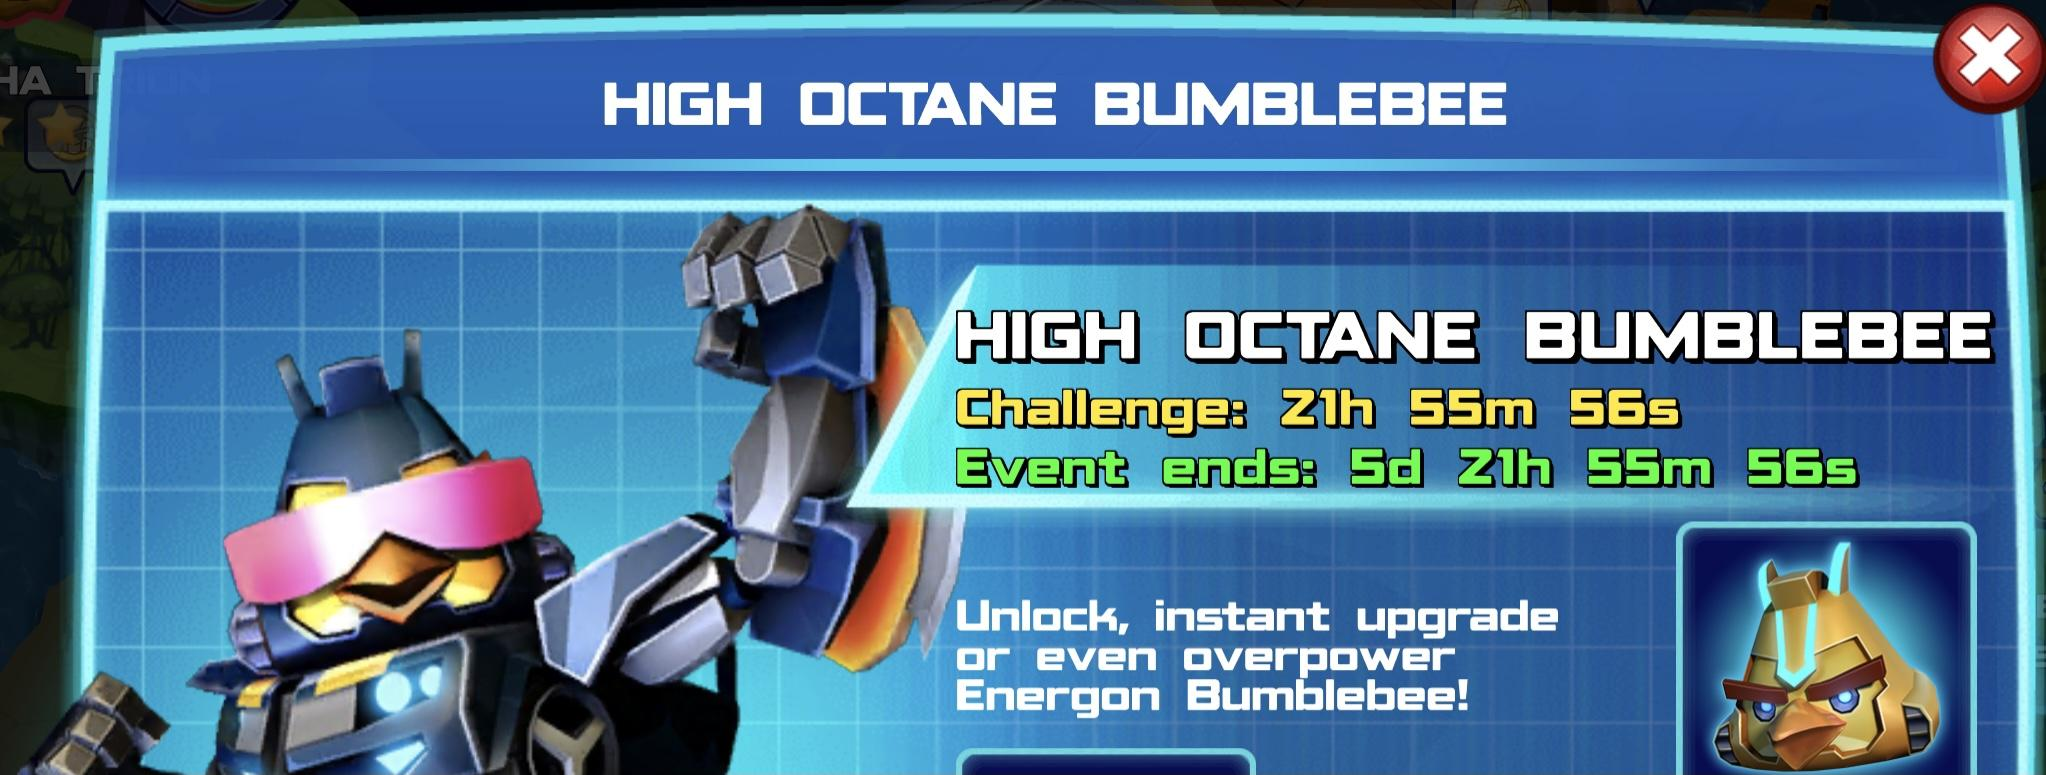 The event banner for High Octane Bumblebee